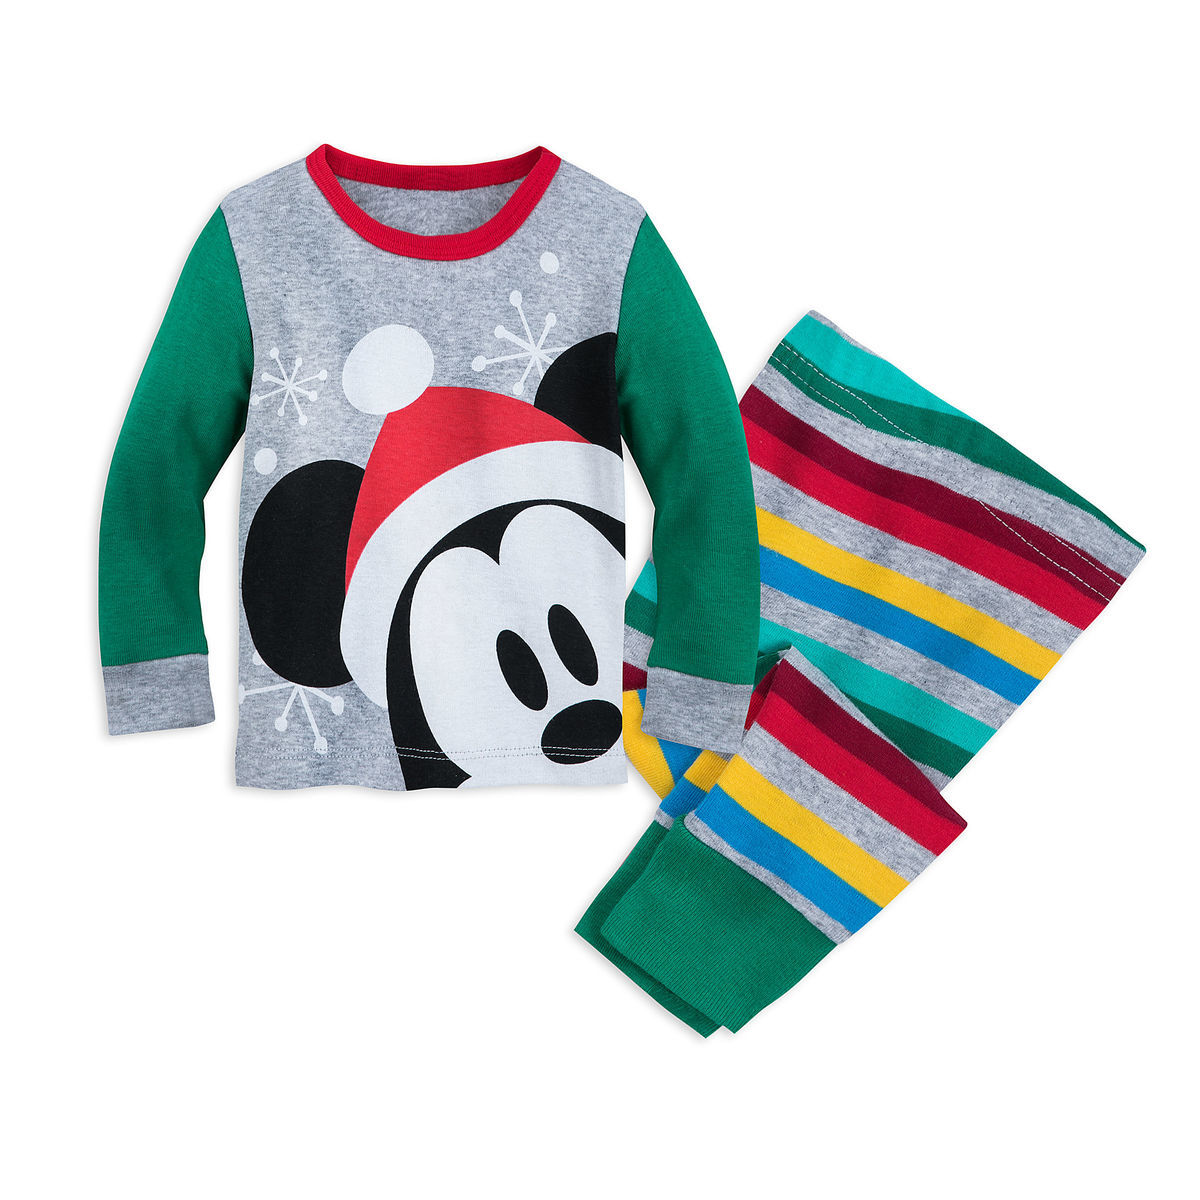 Product Image of Mickey Mouse Holiday PJ PALS for Baby   1 fb3f51b16